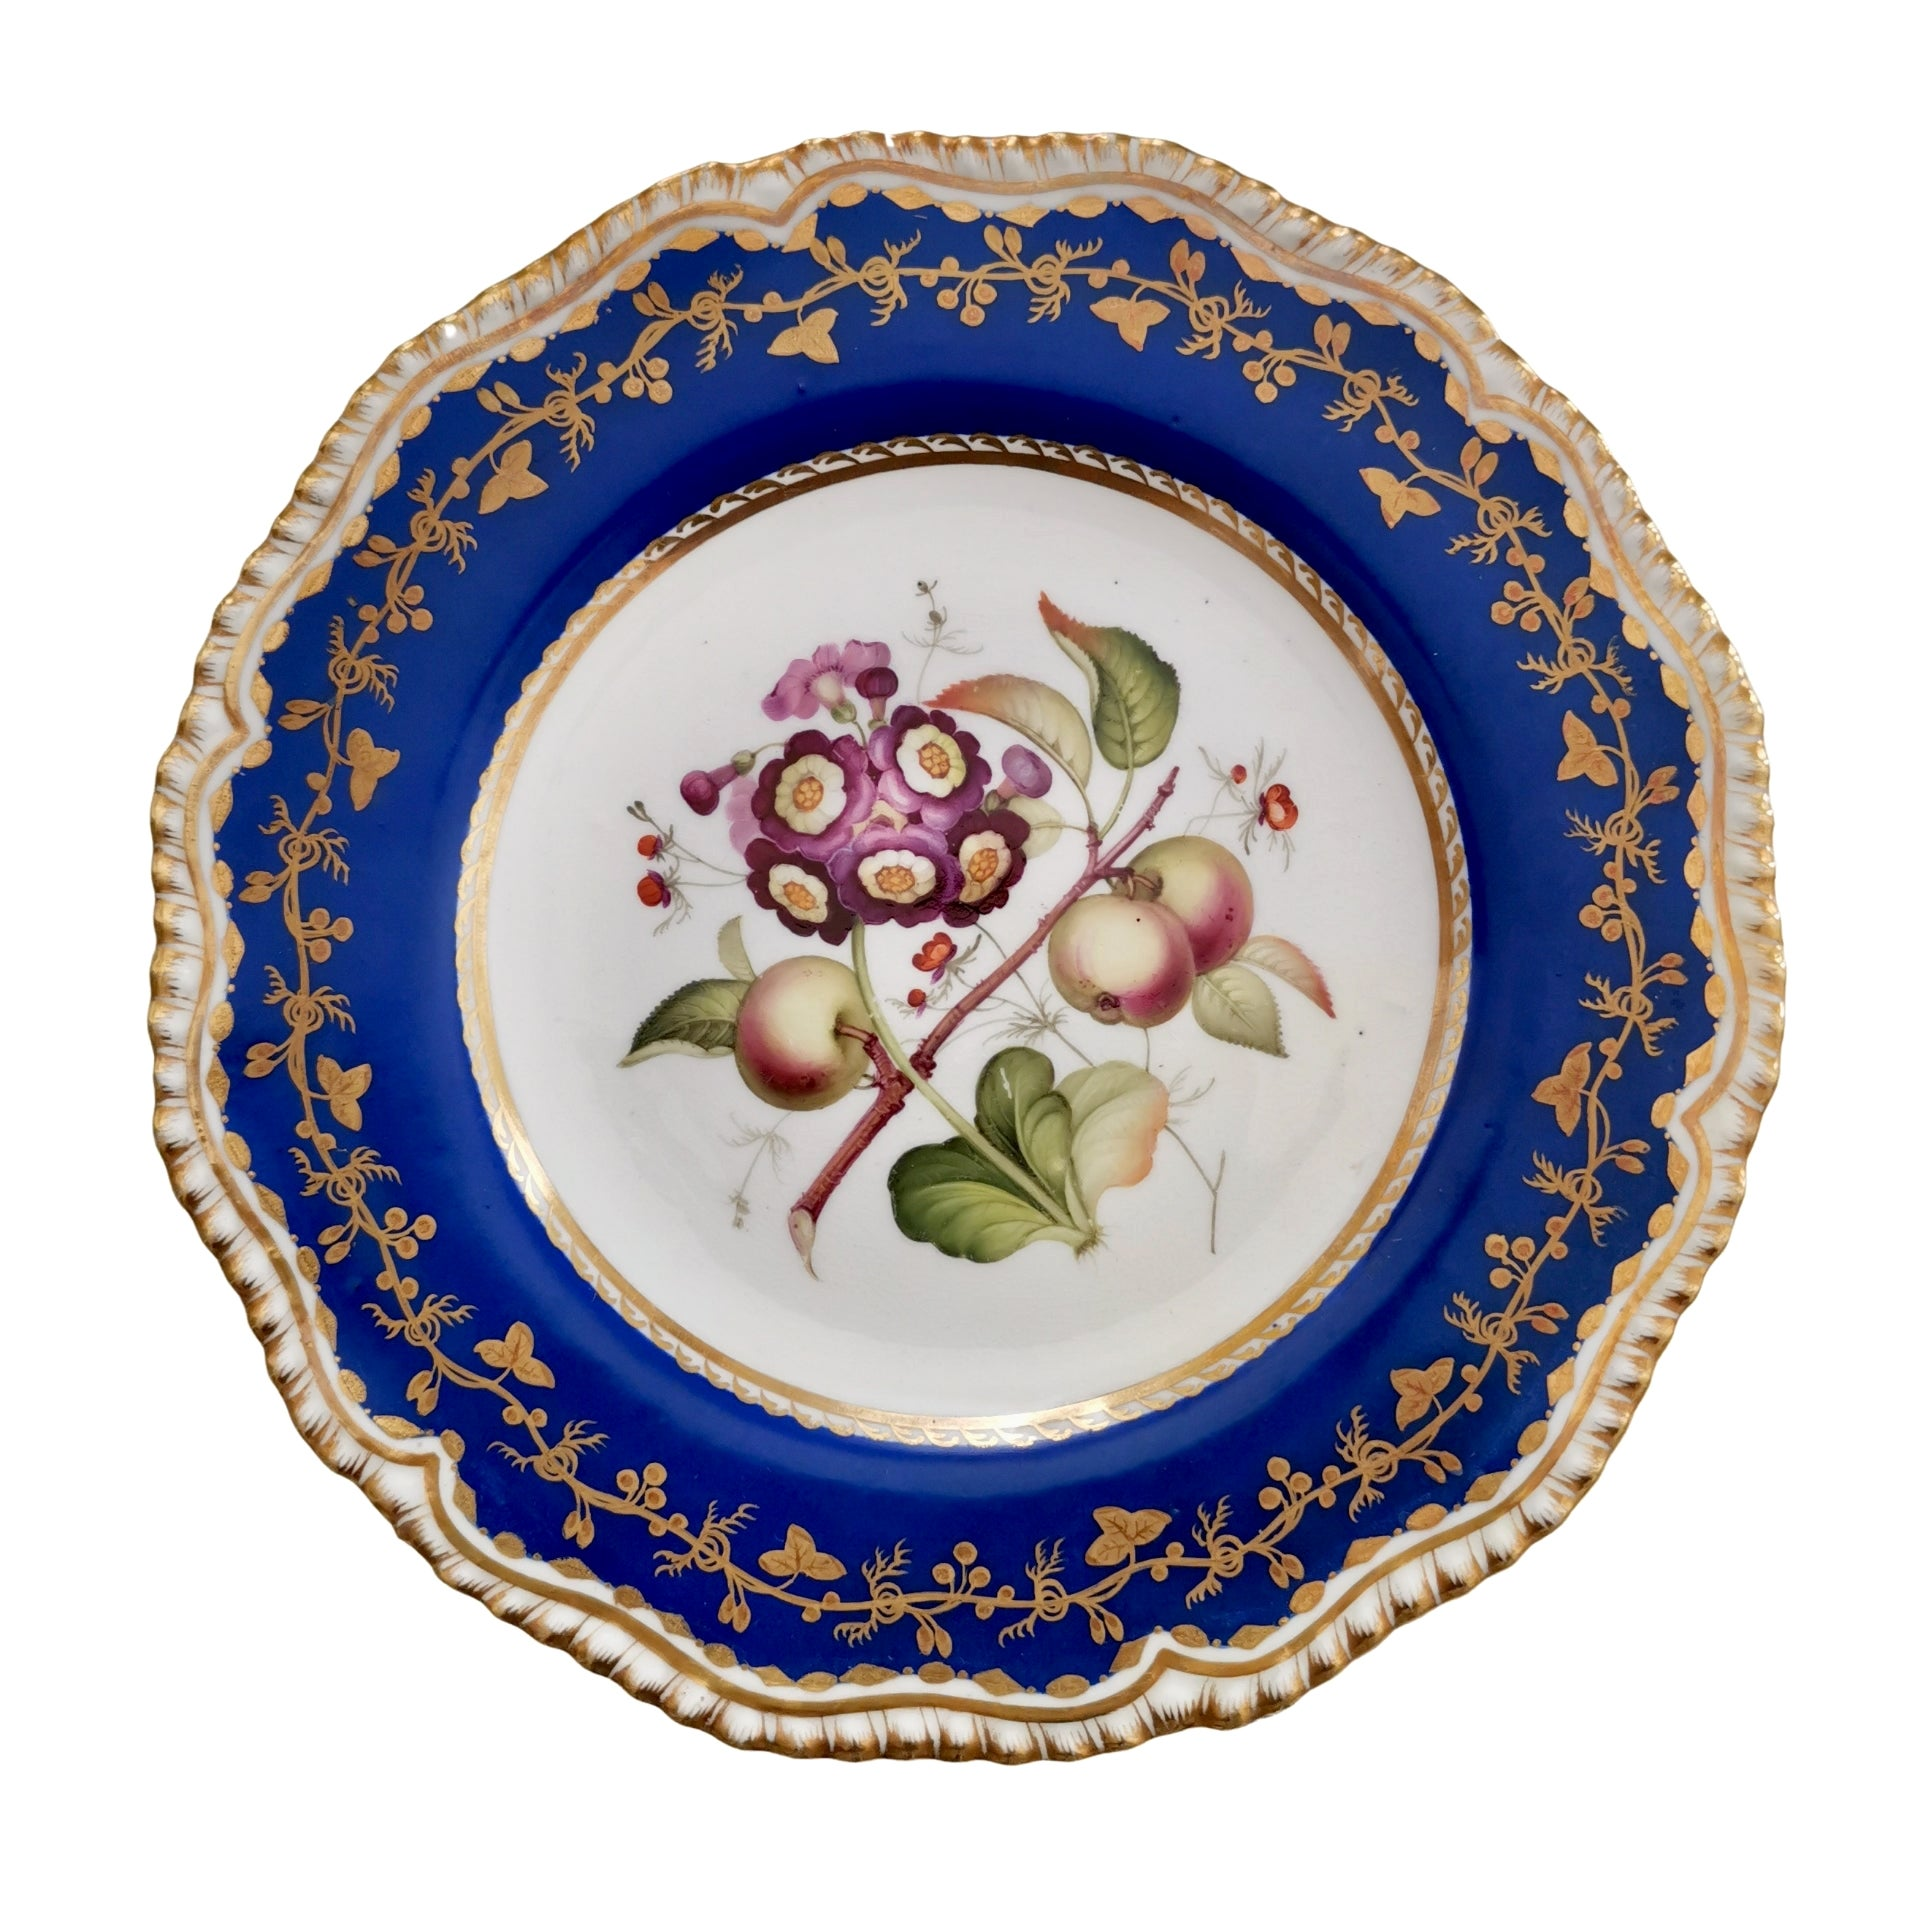 Coalport Porcelain Plate, Blue with Auriculas and Apples, ca 1830